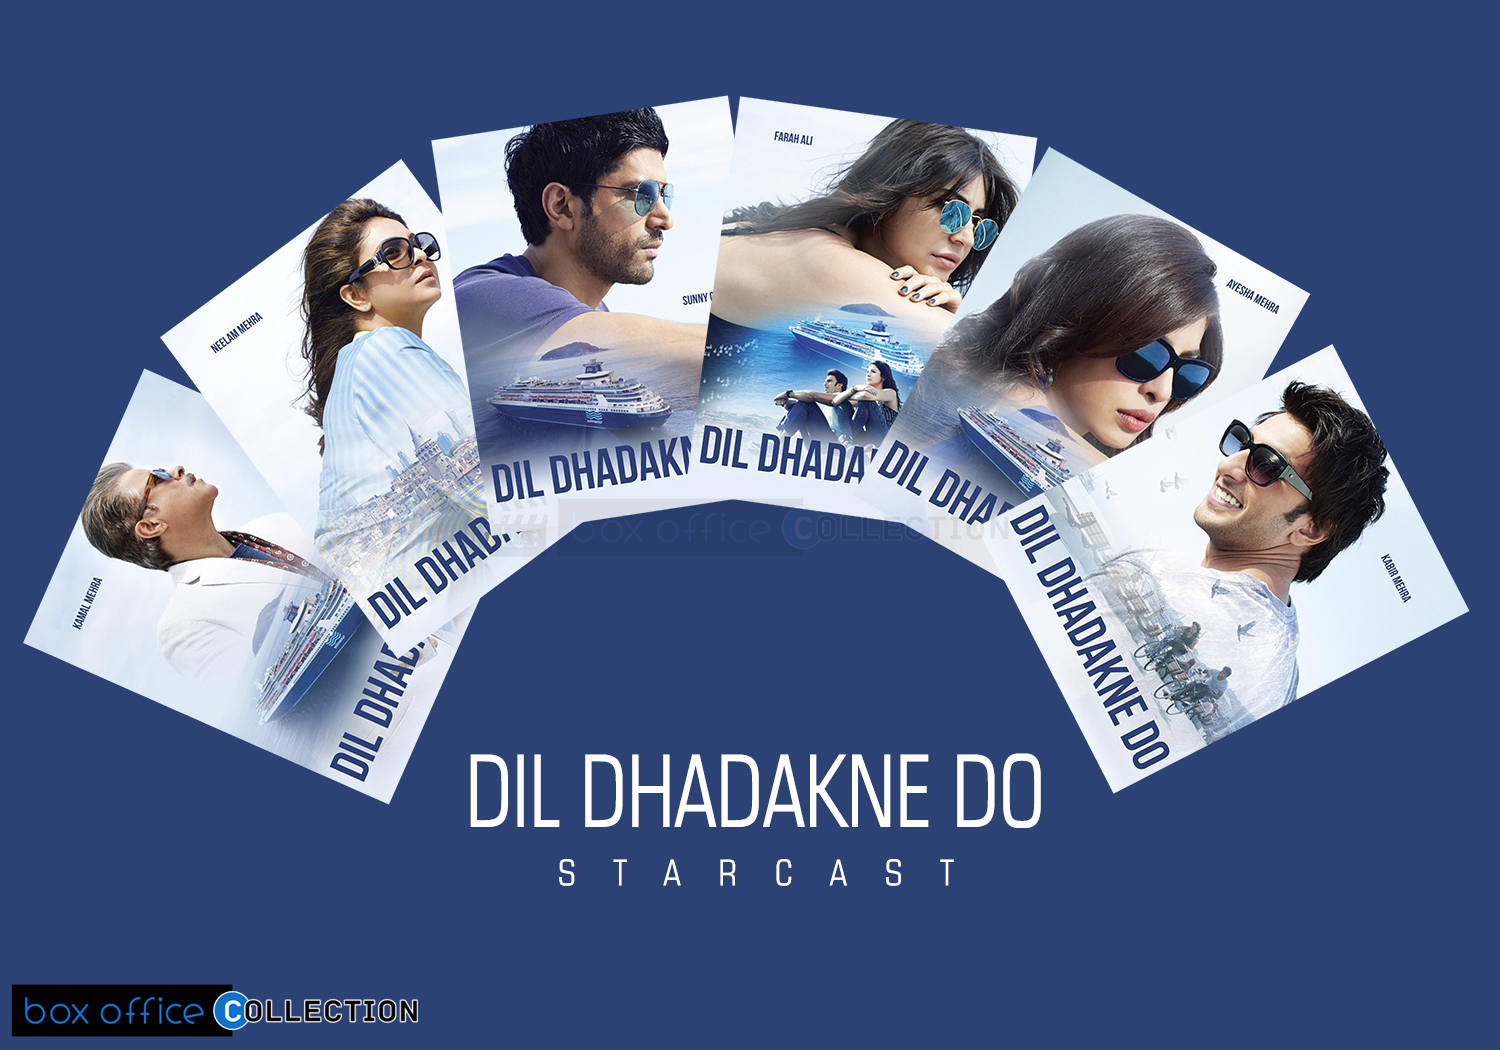 dil dhadakne do starcast revealed